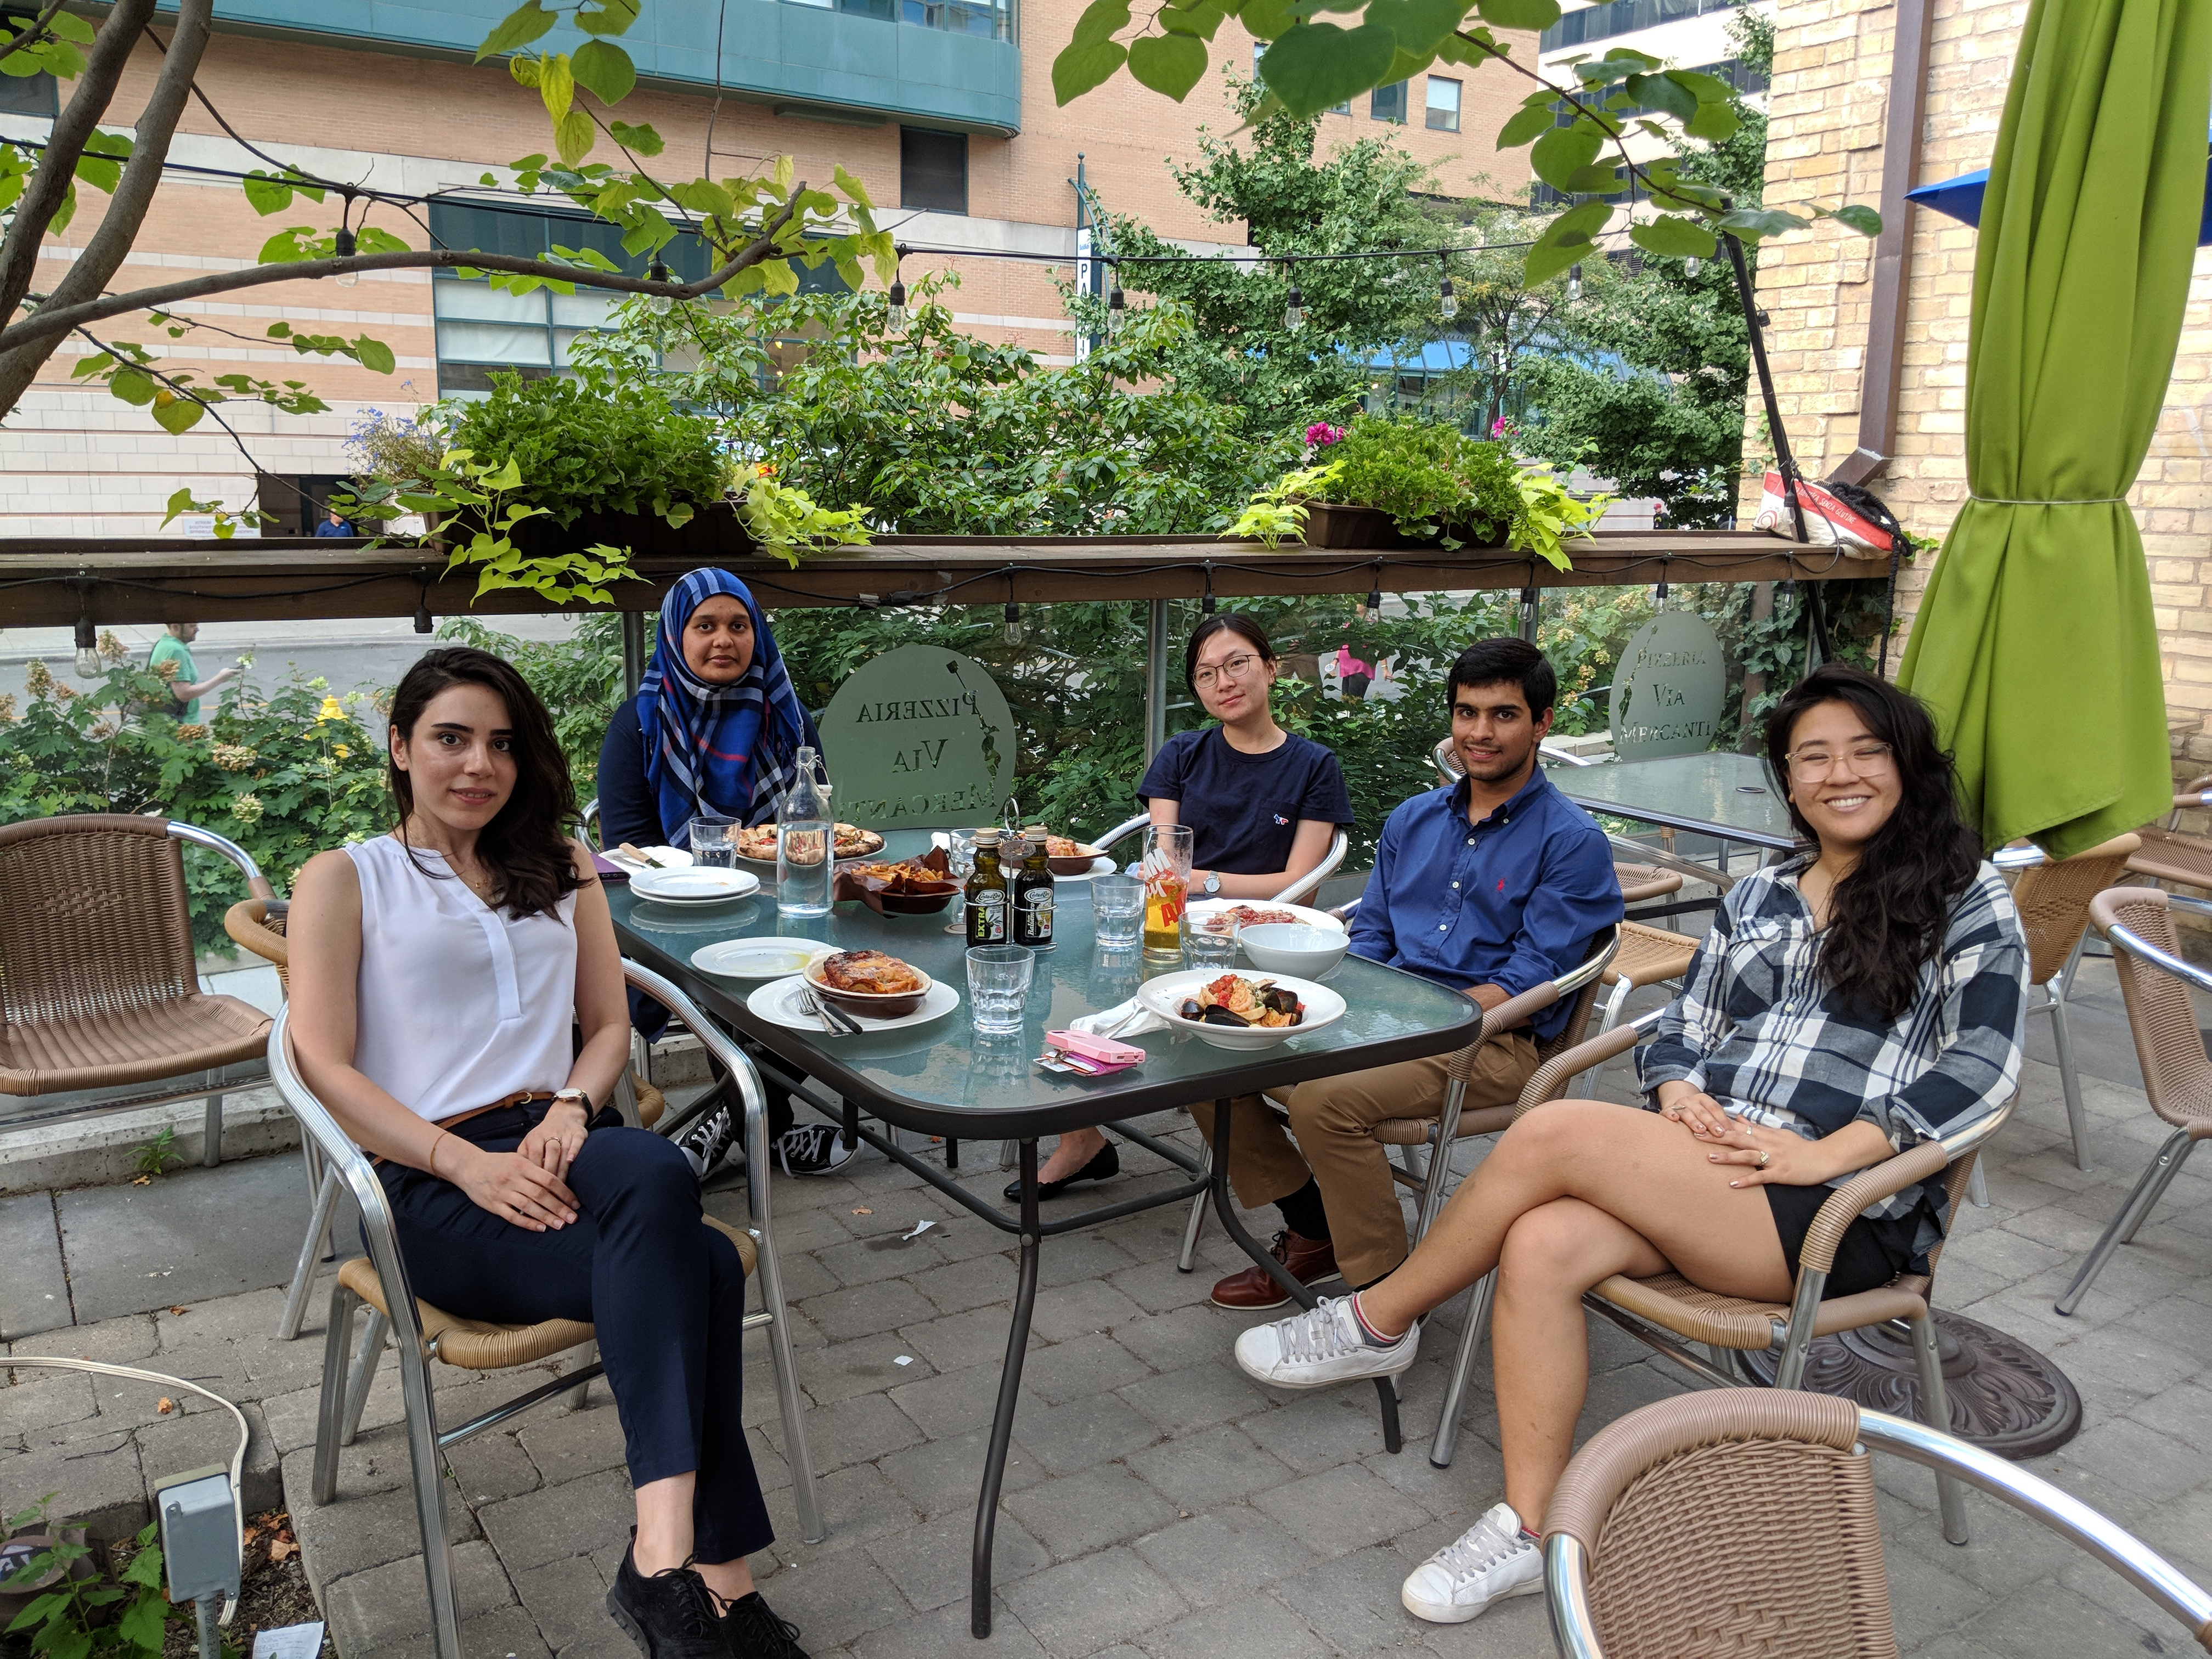 5 lab members sitting around an outdoor patio table with food